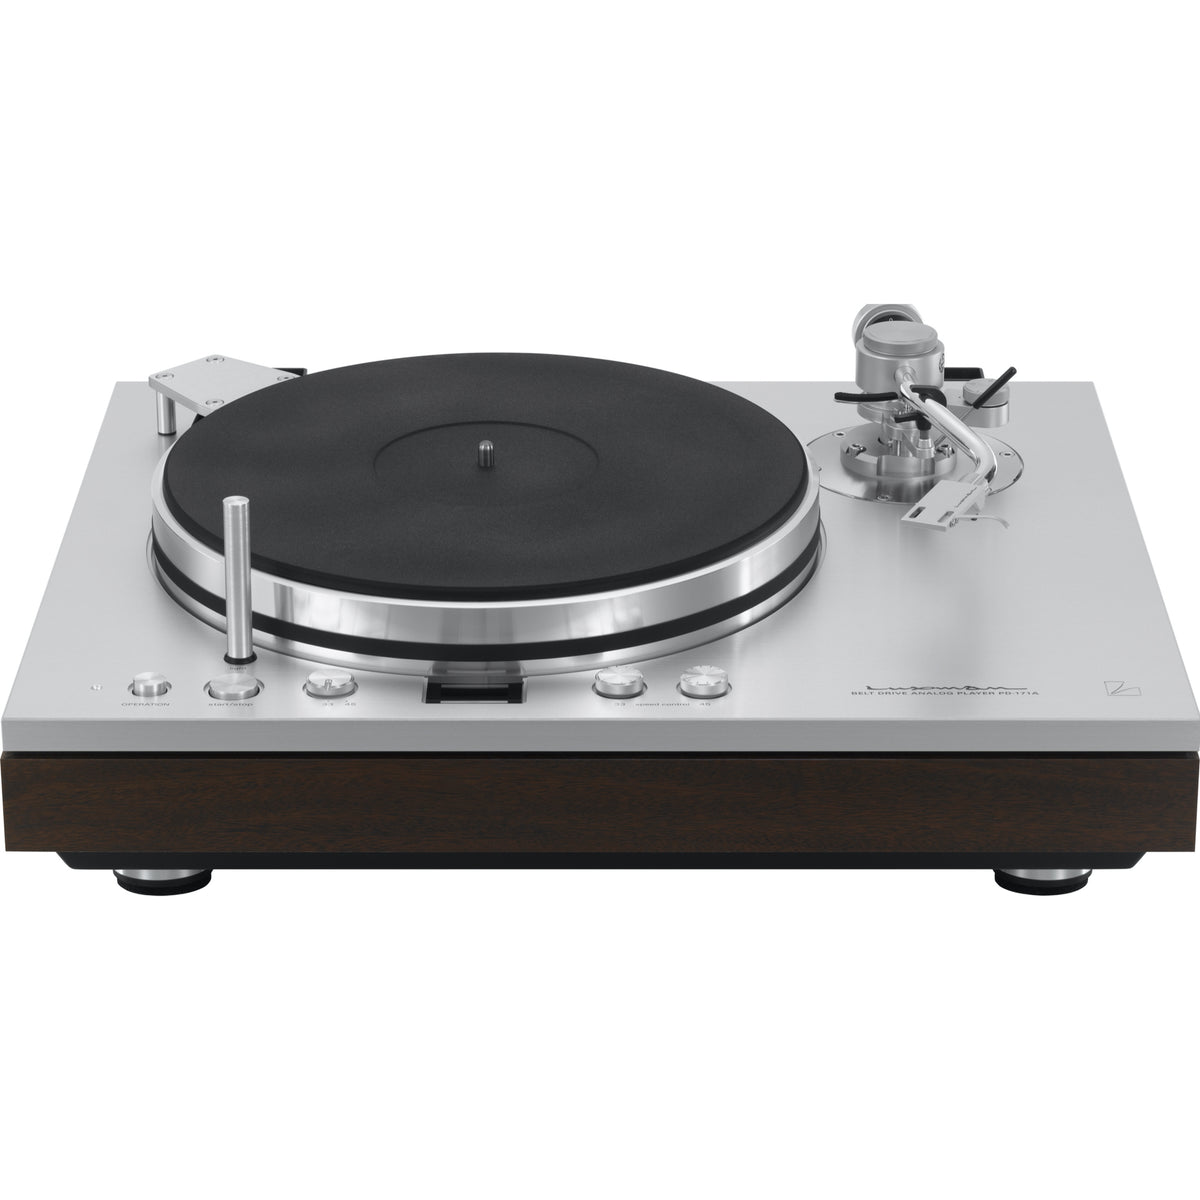 PD-171A Turntable